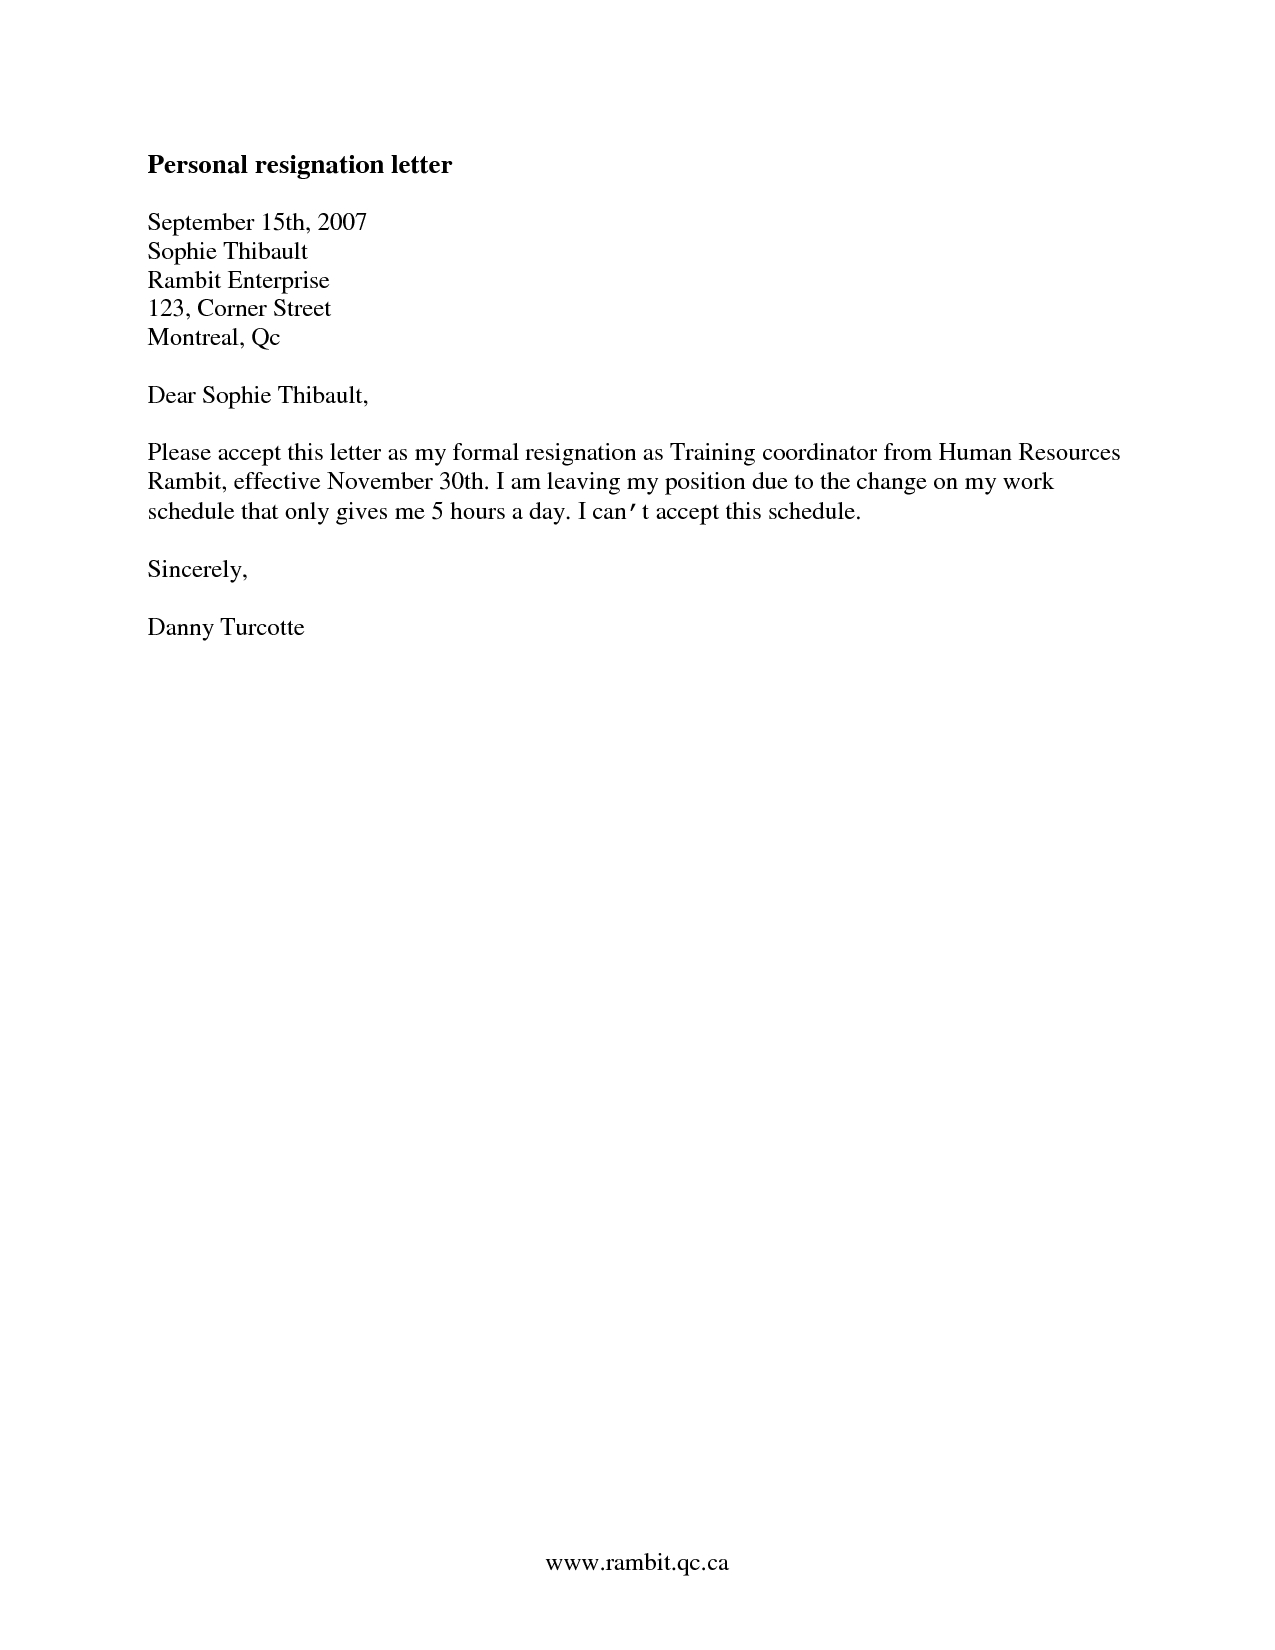 Immediate Resignation Letter Template - Immediate Resignation Letter Health Reasons Accept This as My formal